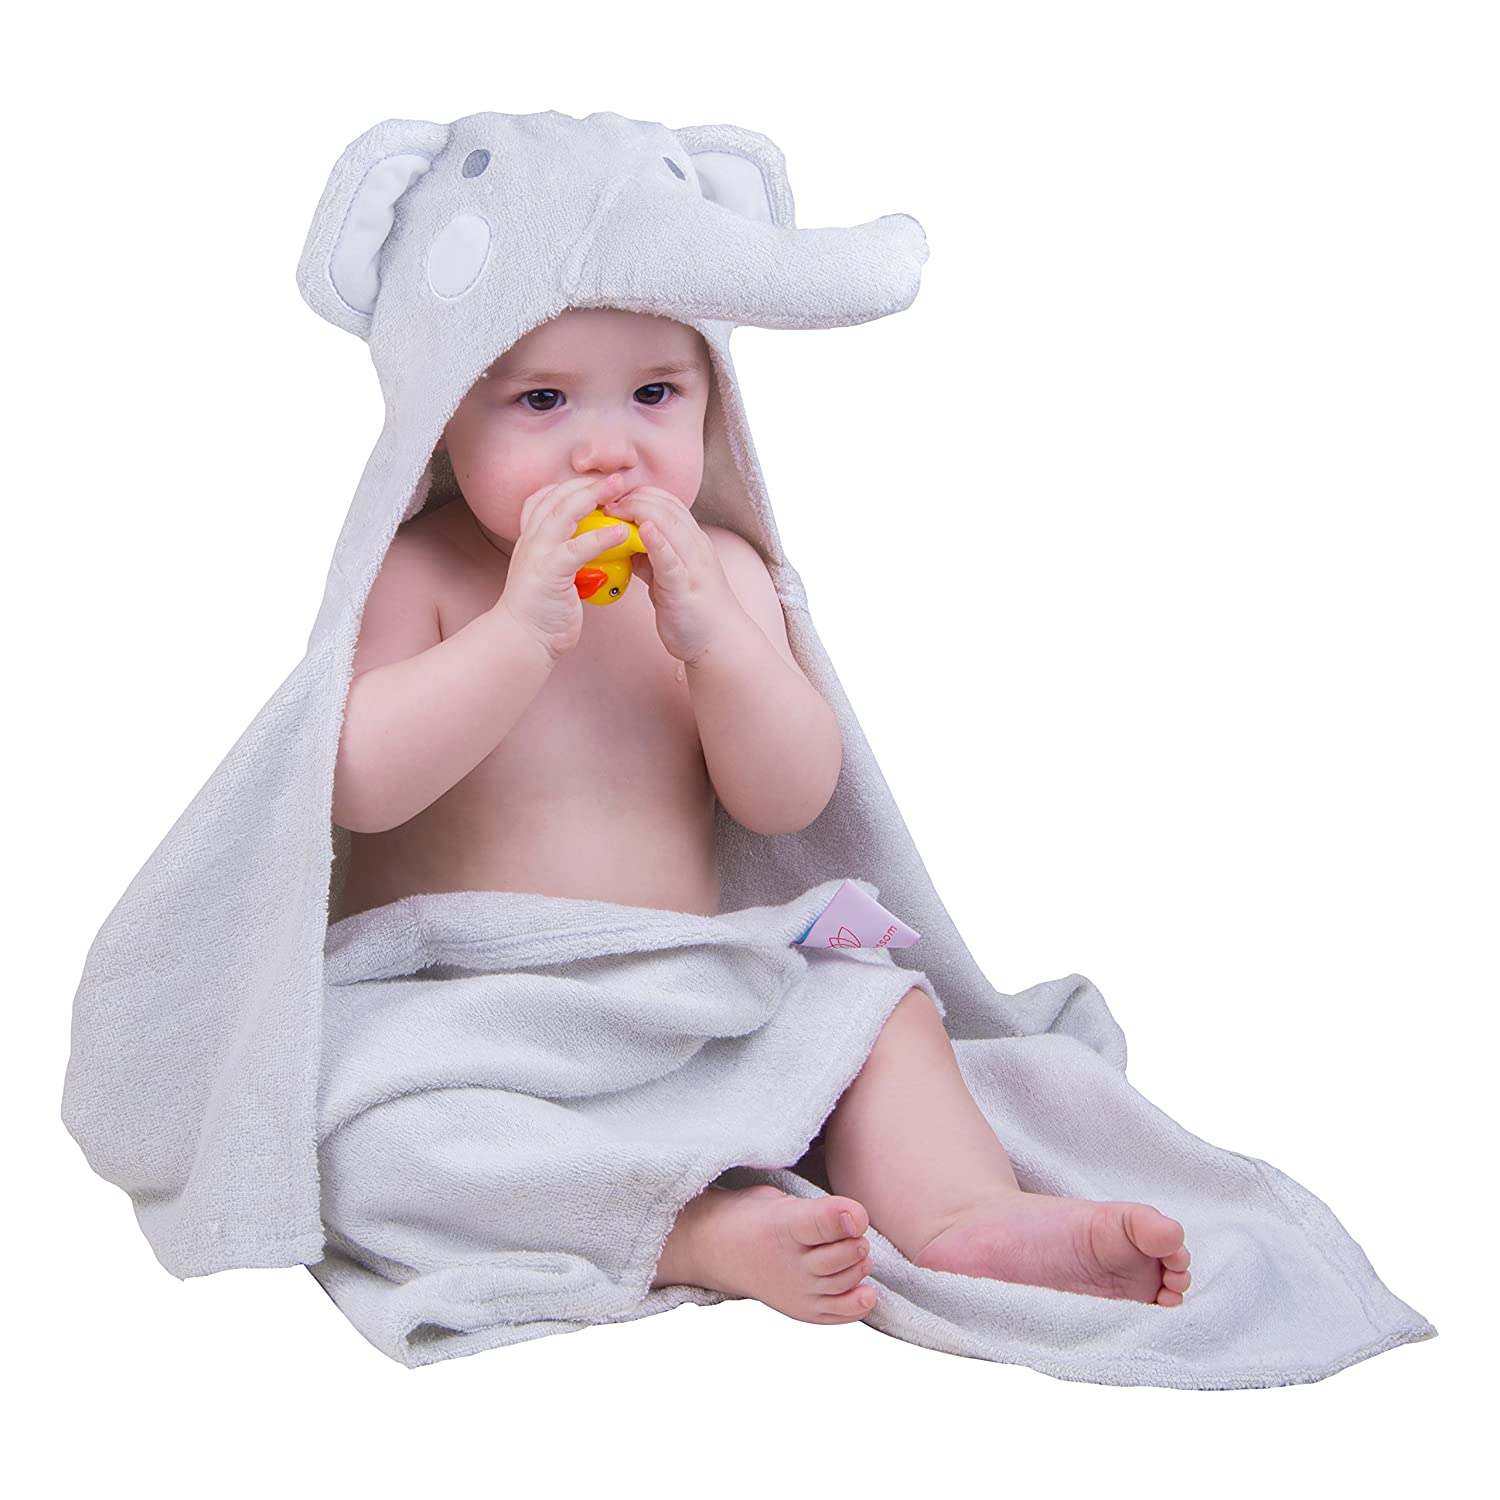 Absorbent Hypoallergenic Extra Large 100/% Organic Bamboo Baby Hooded Towel